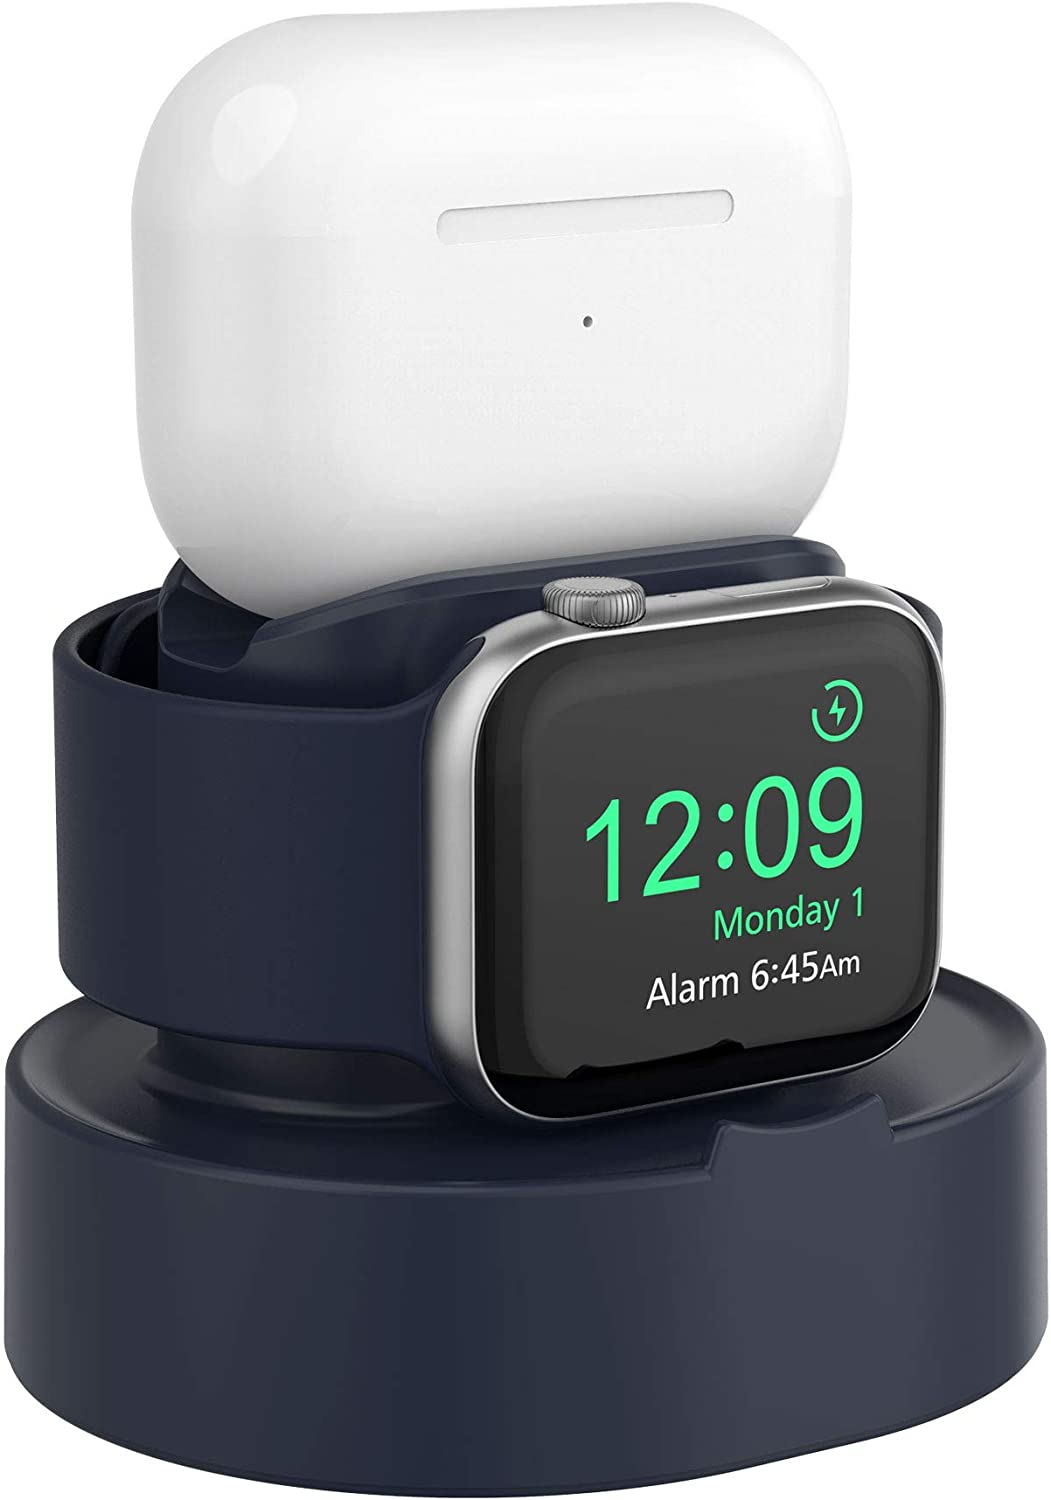 SOKUSIN Charger Stand for Apple Watch 38mm 40mm 42mm 44mm iWatch 1/2 /3/4 /5/6 /SE, Apple Watch Charging Stand Holder and Night Stand Mode, AirPods Pro Charger Dock,Blue【Cables NOT Included】